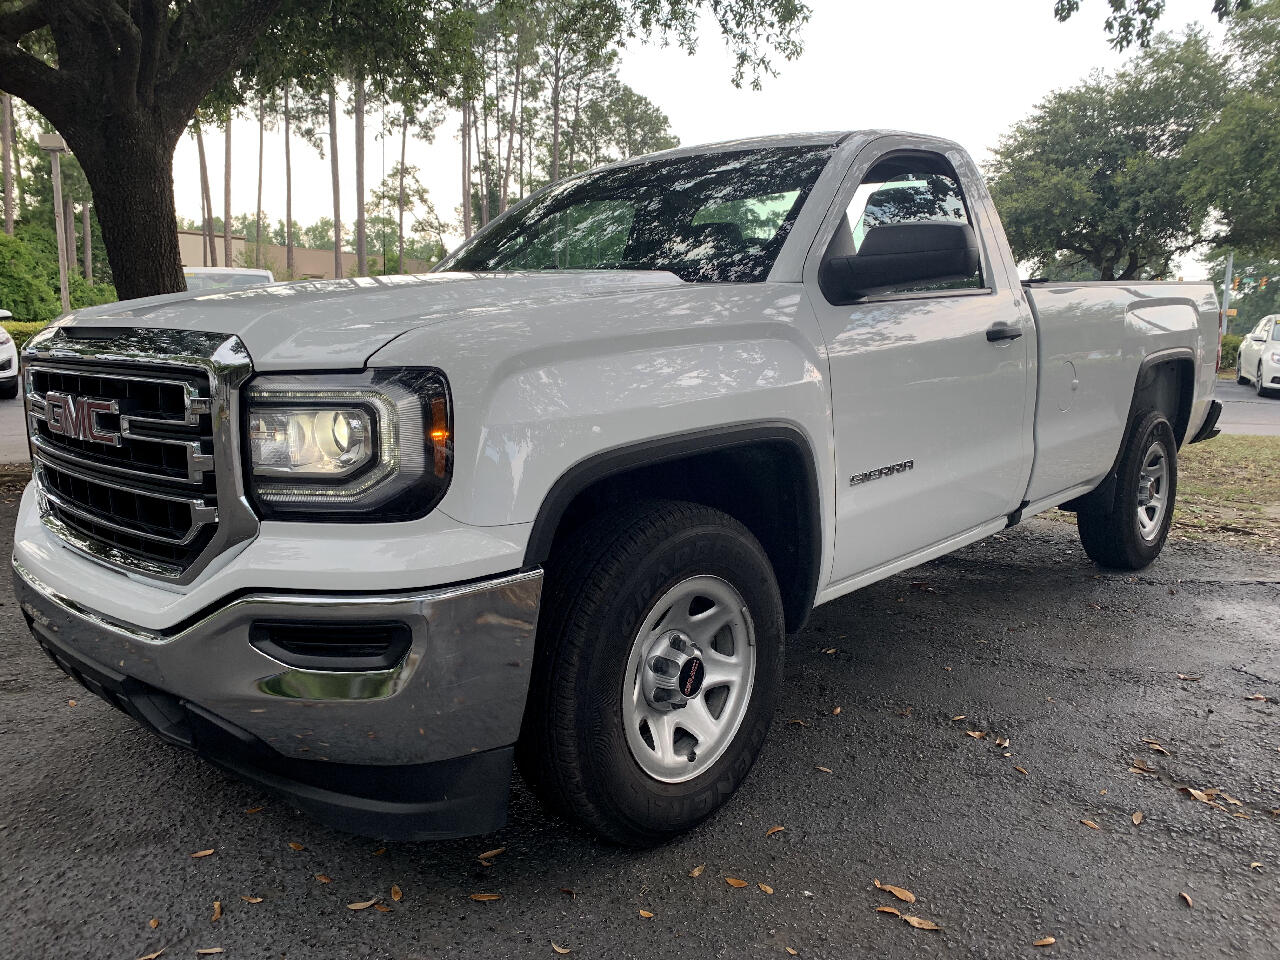 2018 GMC Sierra 1500 2WD Long Bed Regular Cab Work Truck